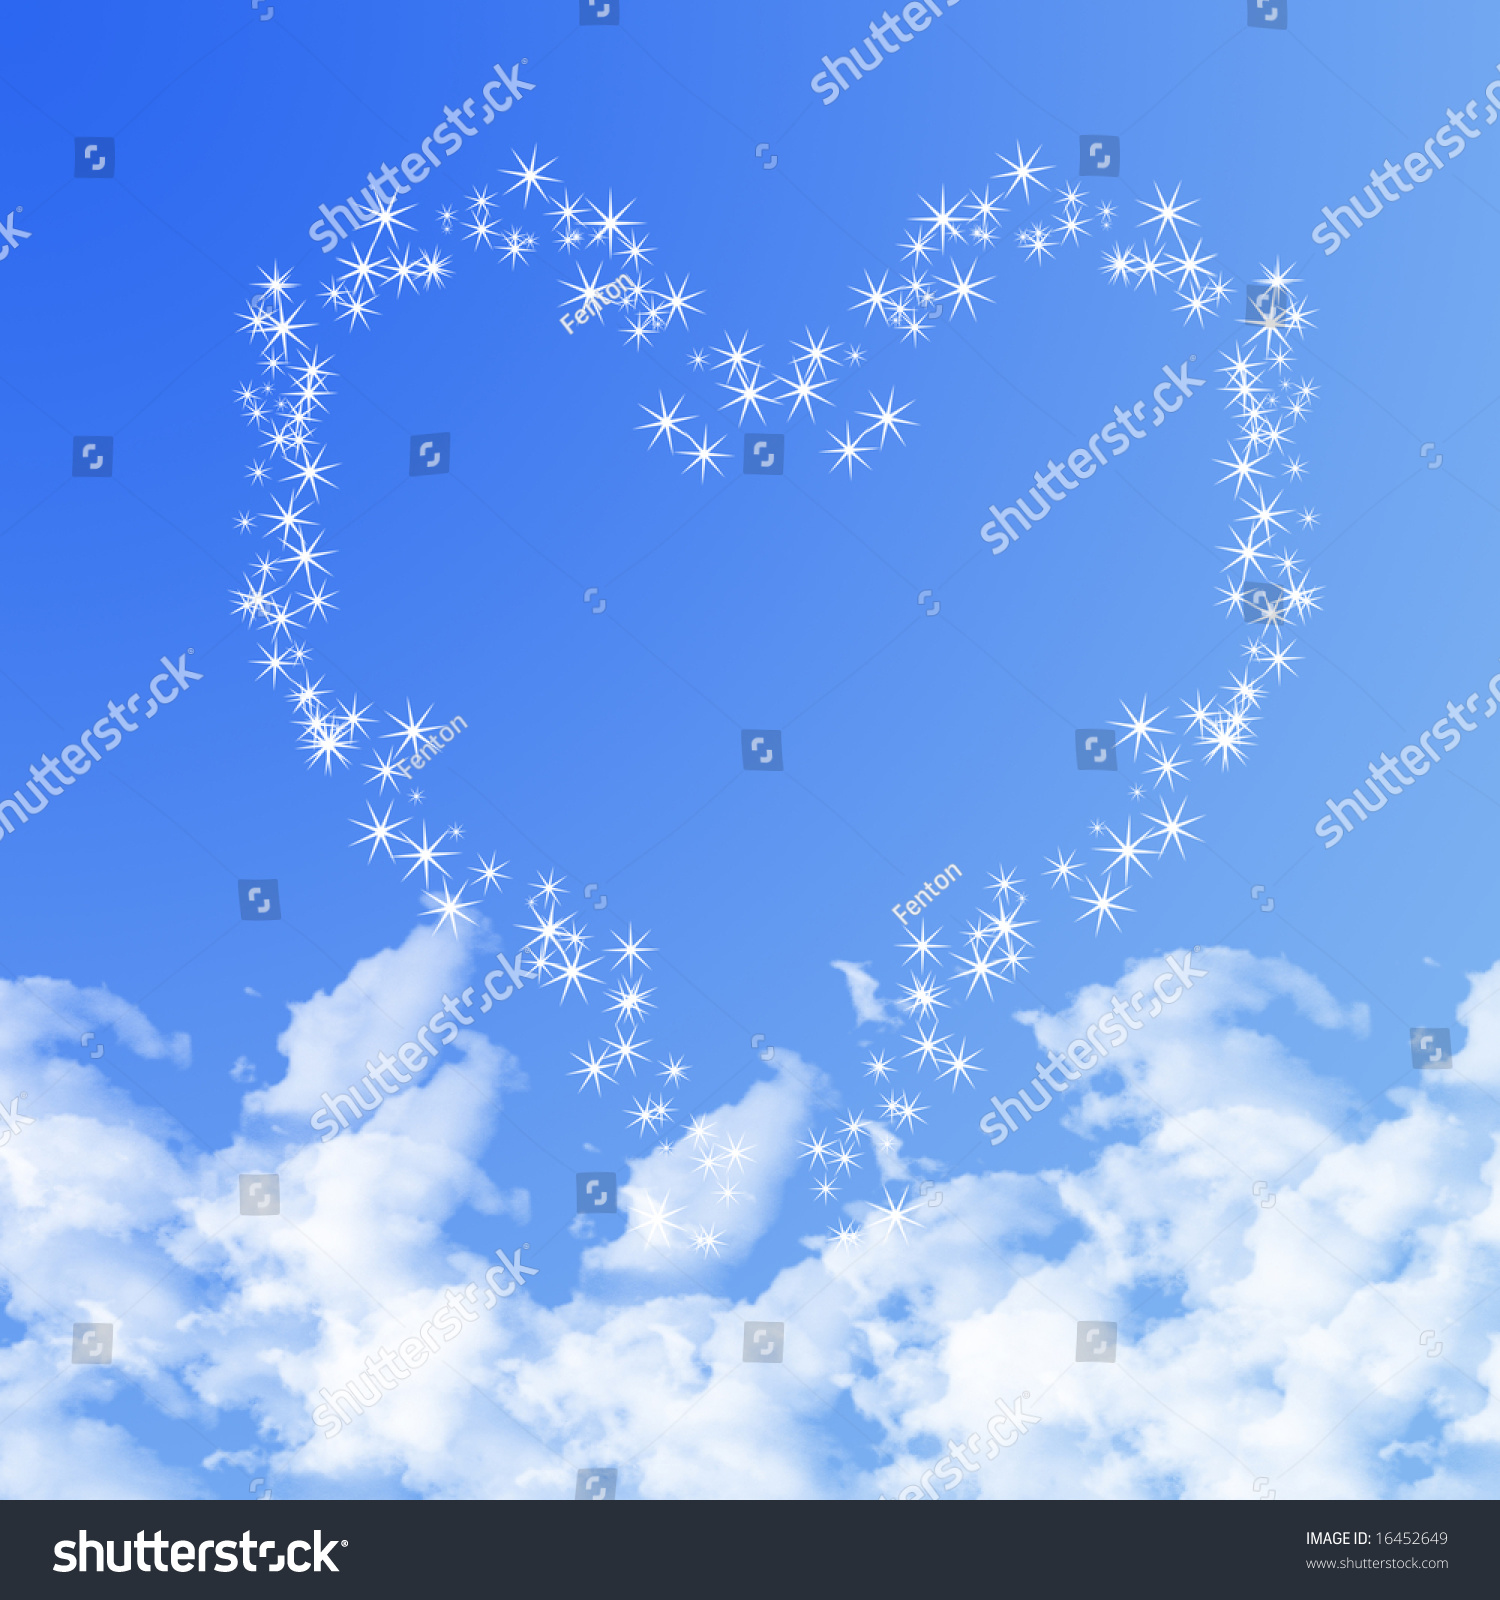 heart clouds stock illustration 16452649 - shutterstock